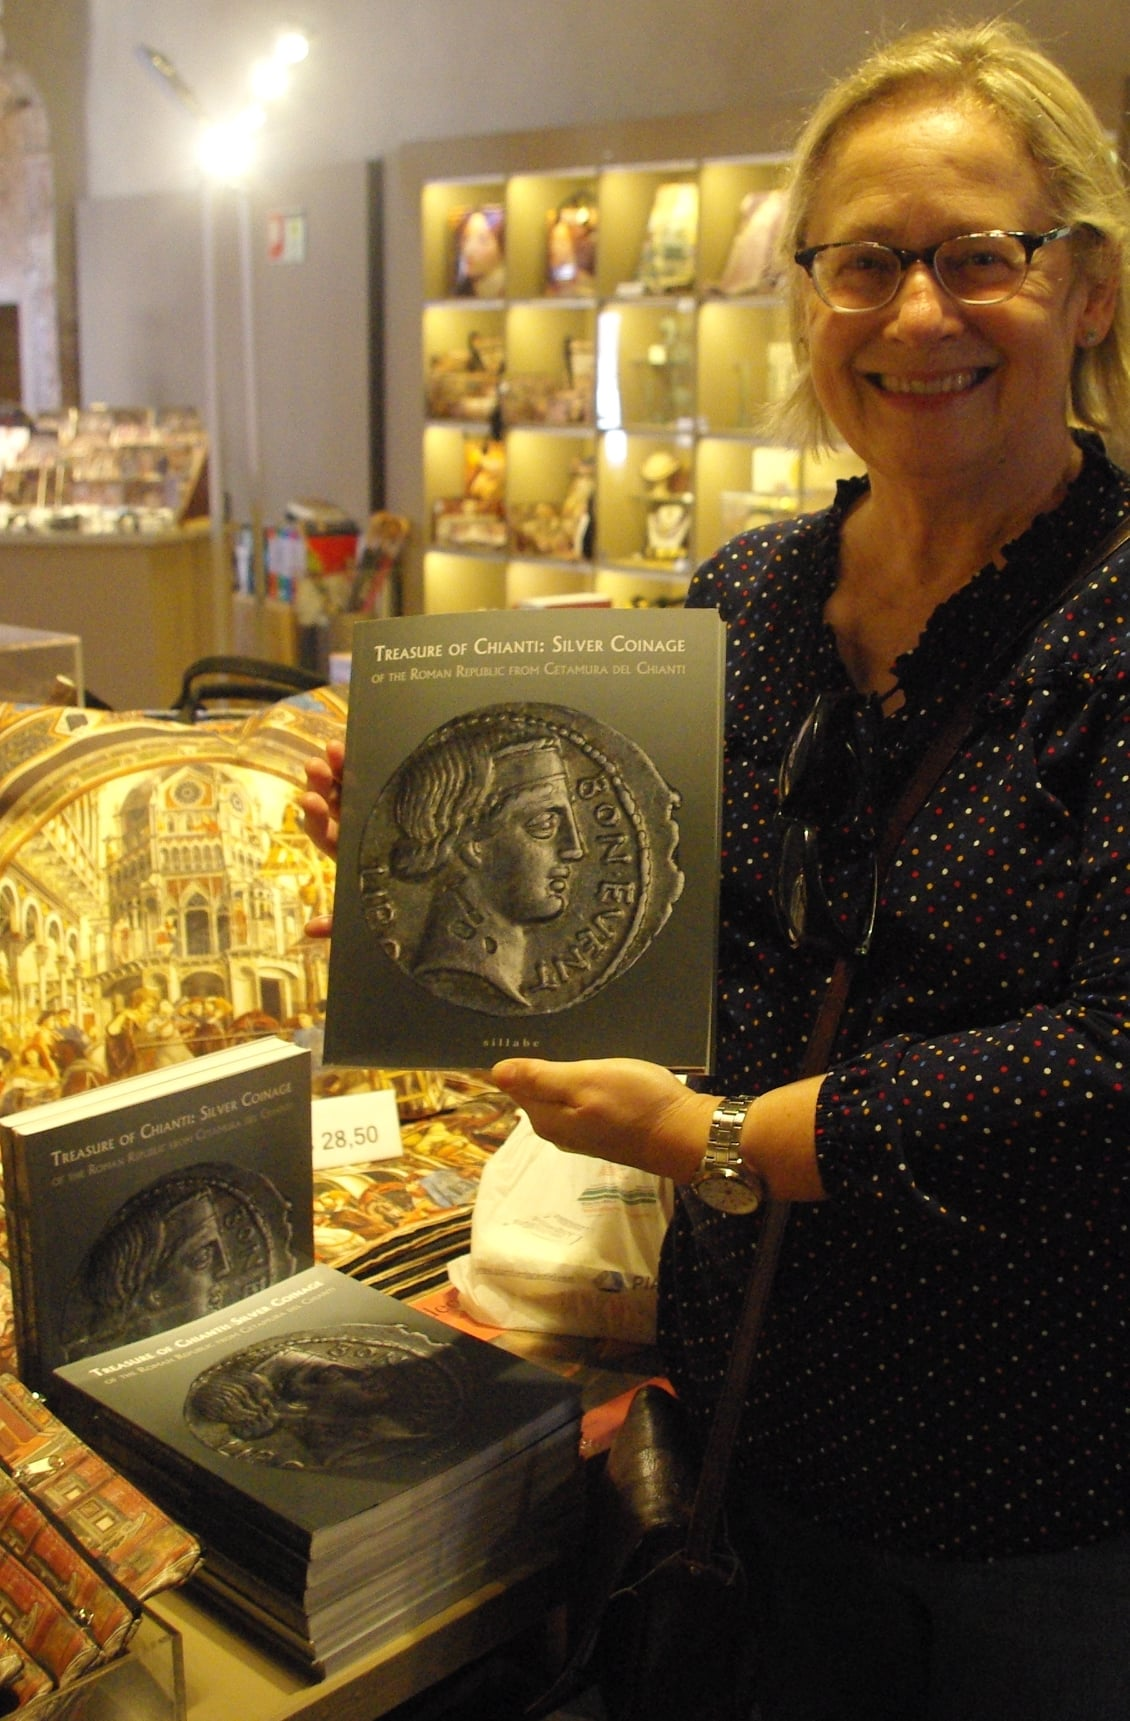 Holland Goldthwaite holds book from exhibition